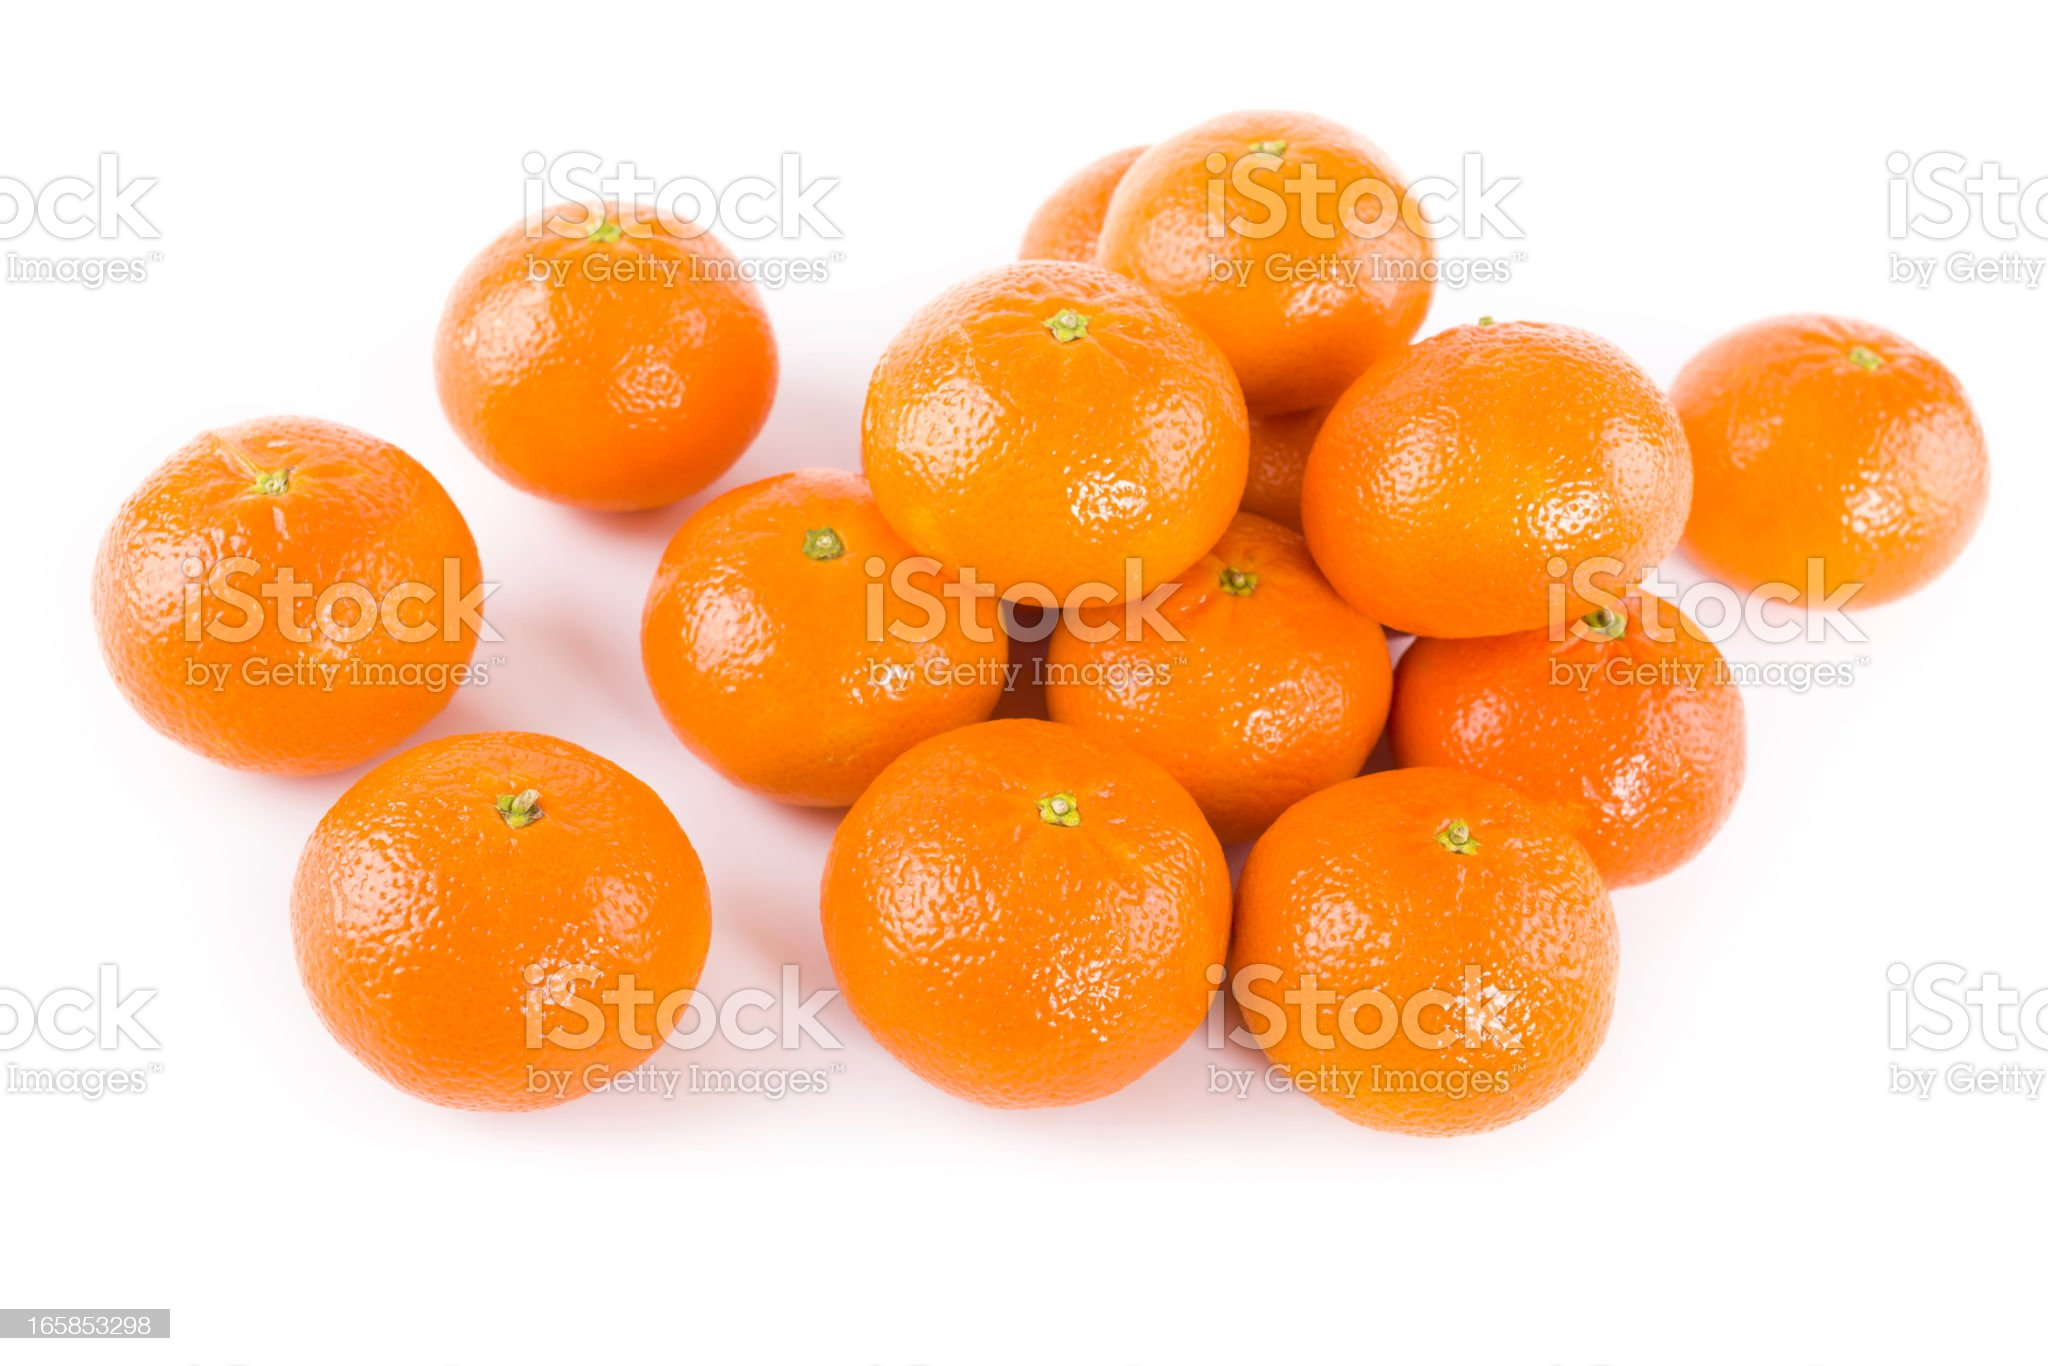 tangerine fruits royalty-free stock photo